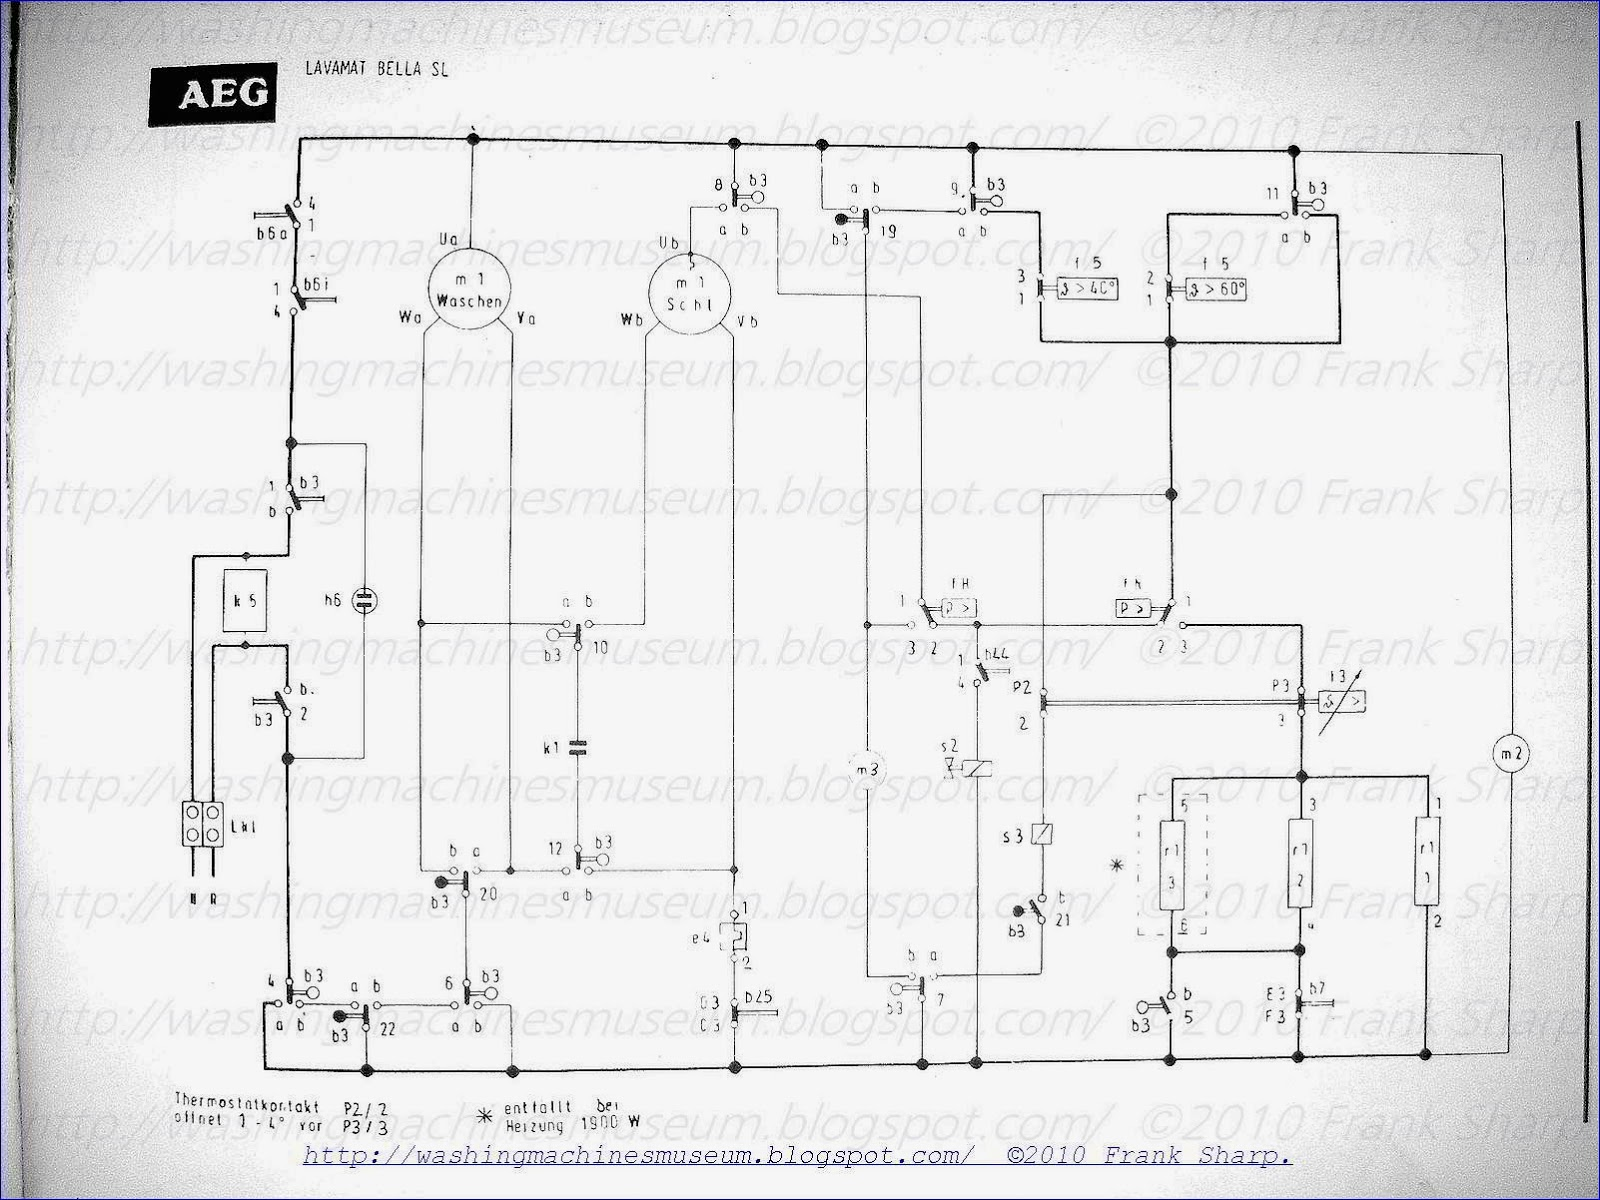 sharp washing machine wiring diagram wiring diagram info aeg washing machine motor wiring diagram aeg washing machine wiring diagram [ 1600 x 1200 Pixel ]